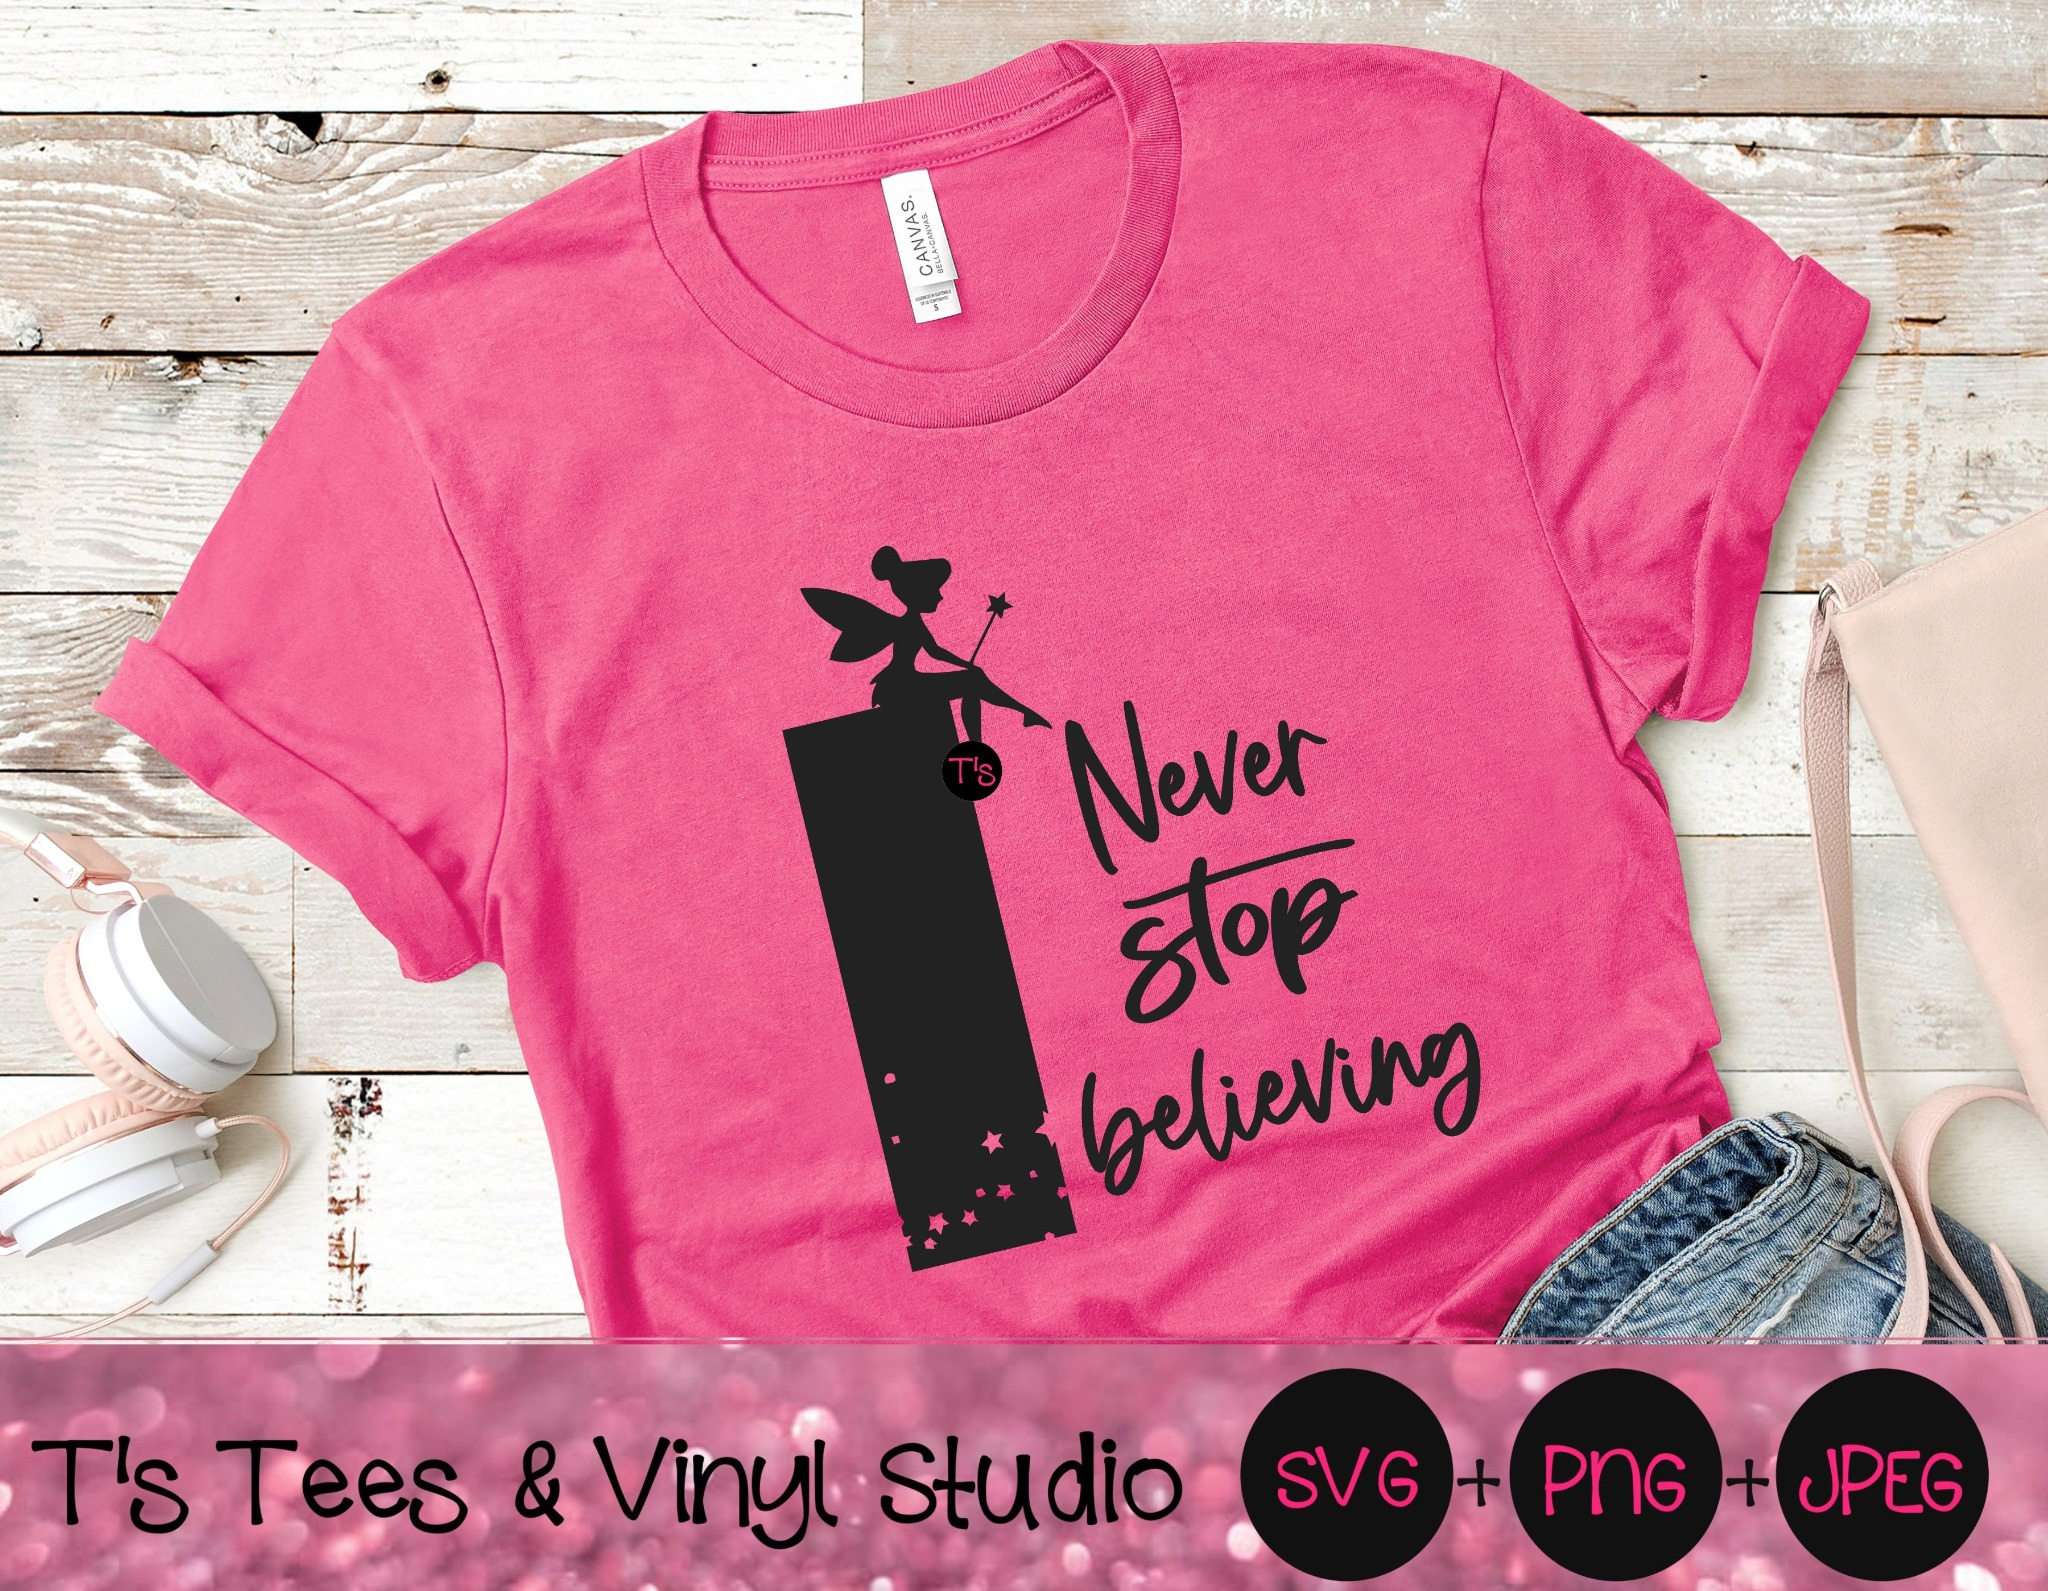 Fairy Svg, Never Stop Believing, Always Believe, Kid At Heart, Childhood Memories, Stay Positive, Fa